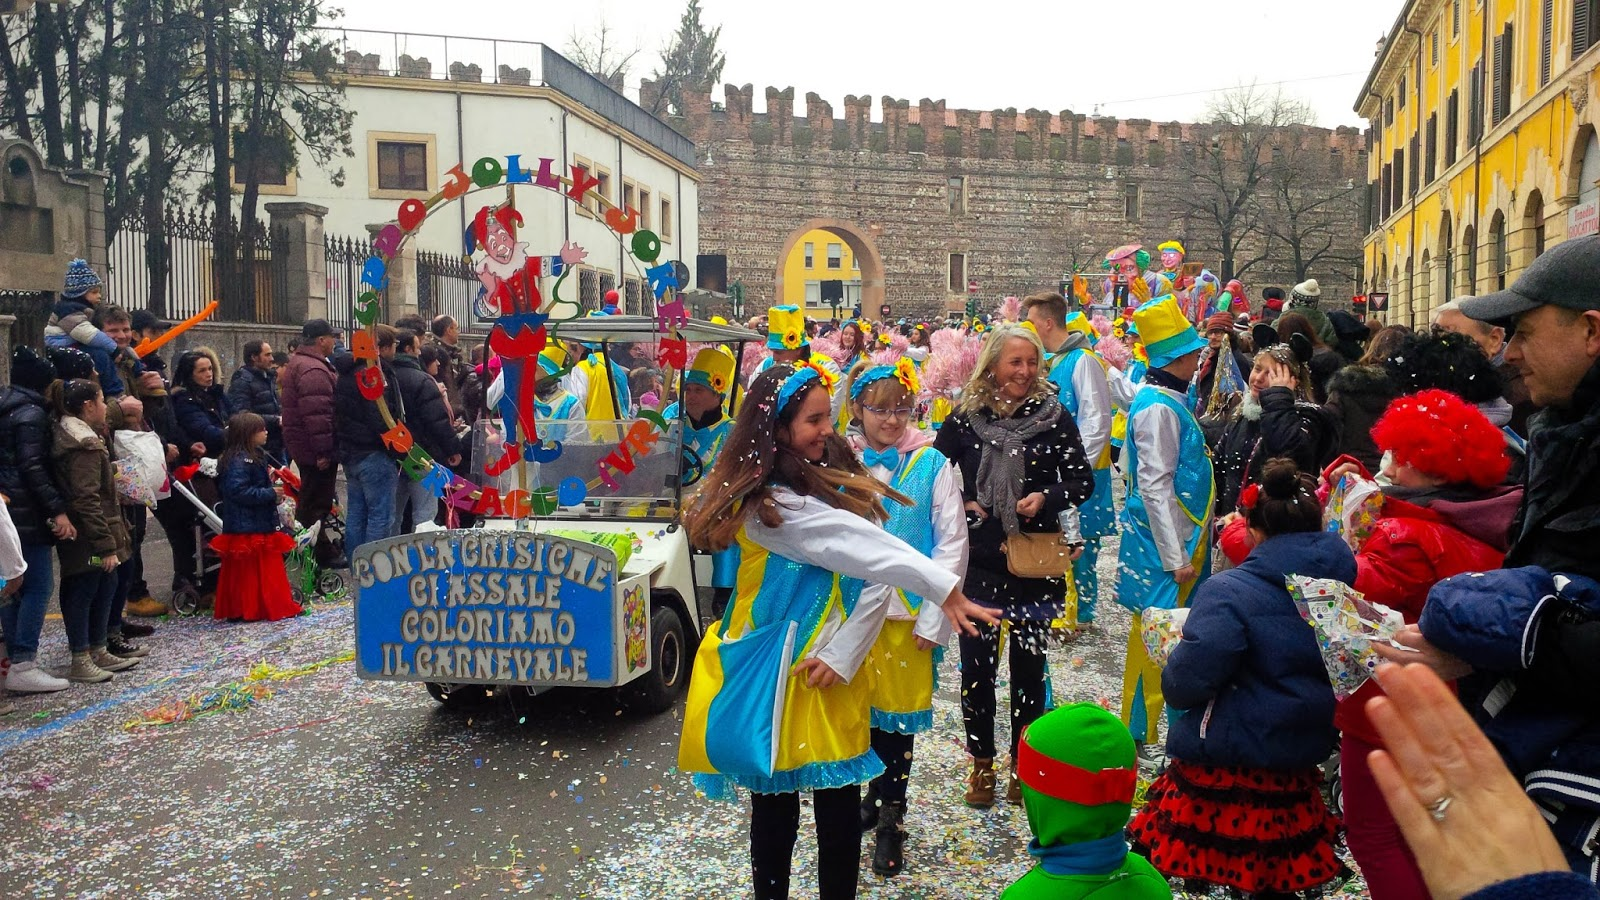 Throwing confetti - Verona Carnival